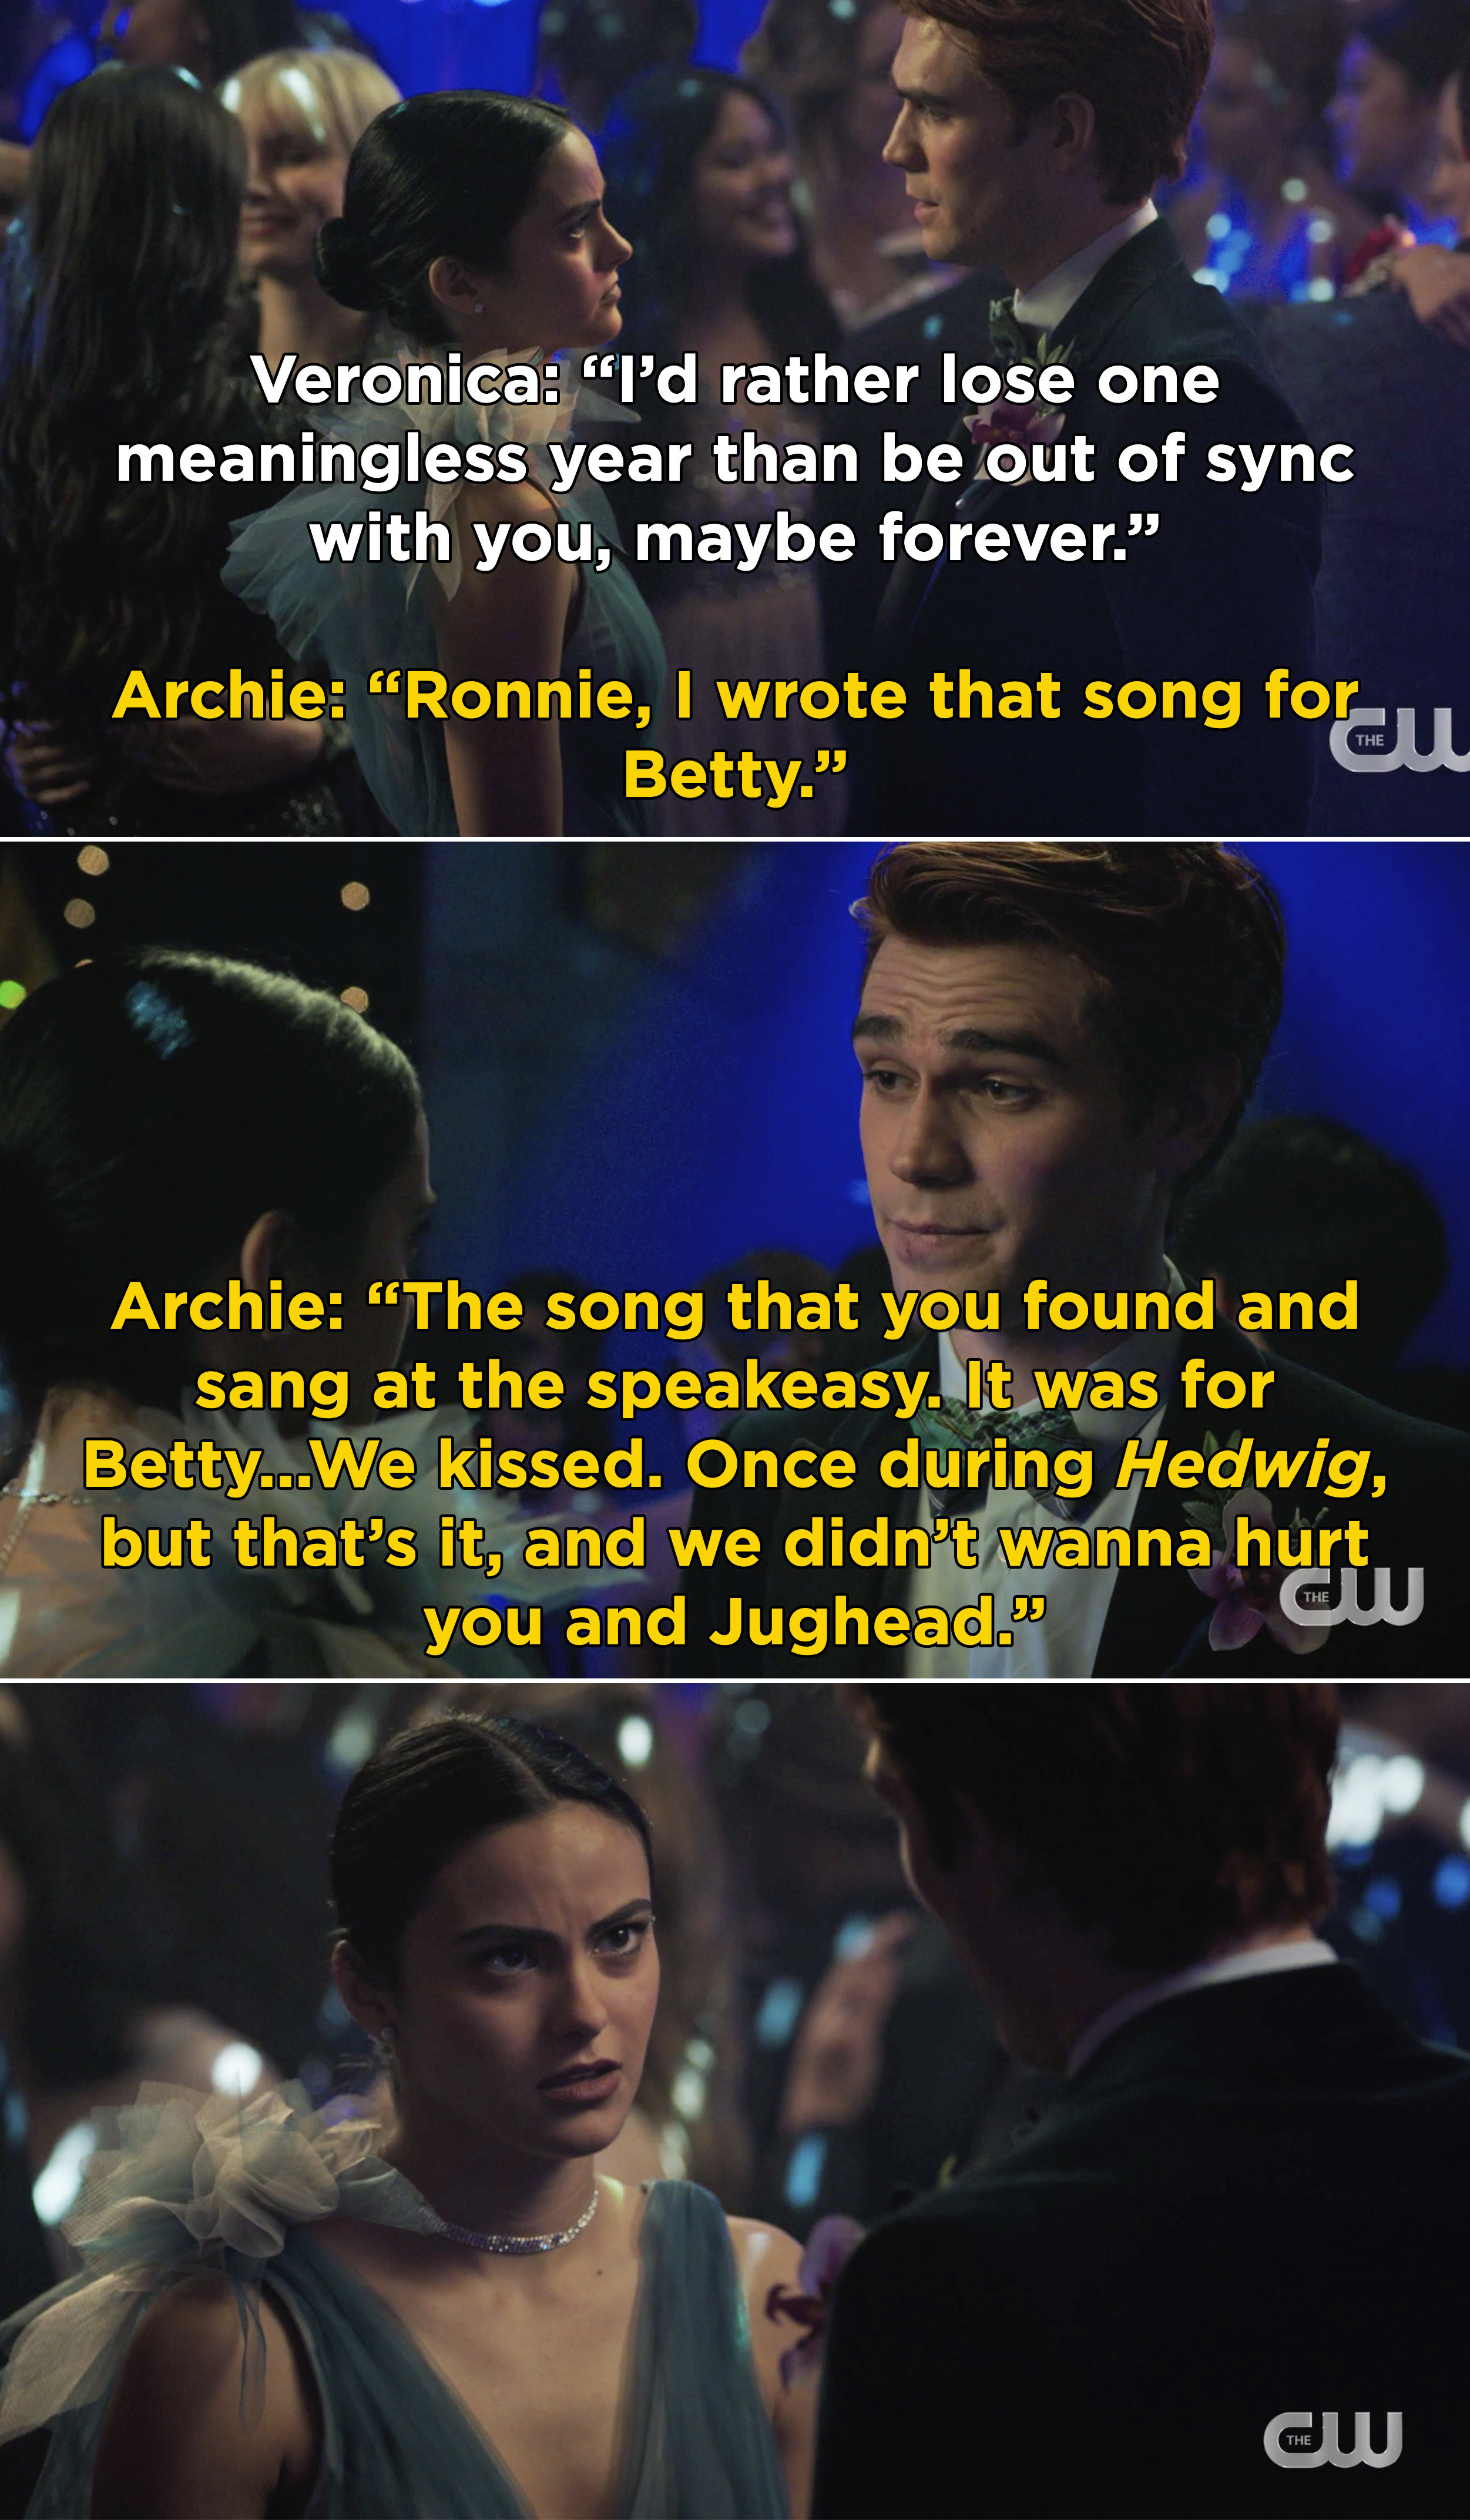 Archie telling Veronica that he wrote the song for Betty and that they kissed during Hedwig but didn't want to hurt her and Jughead